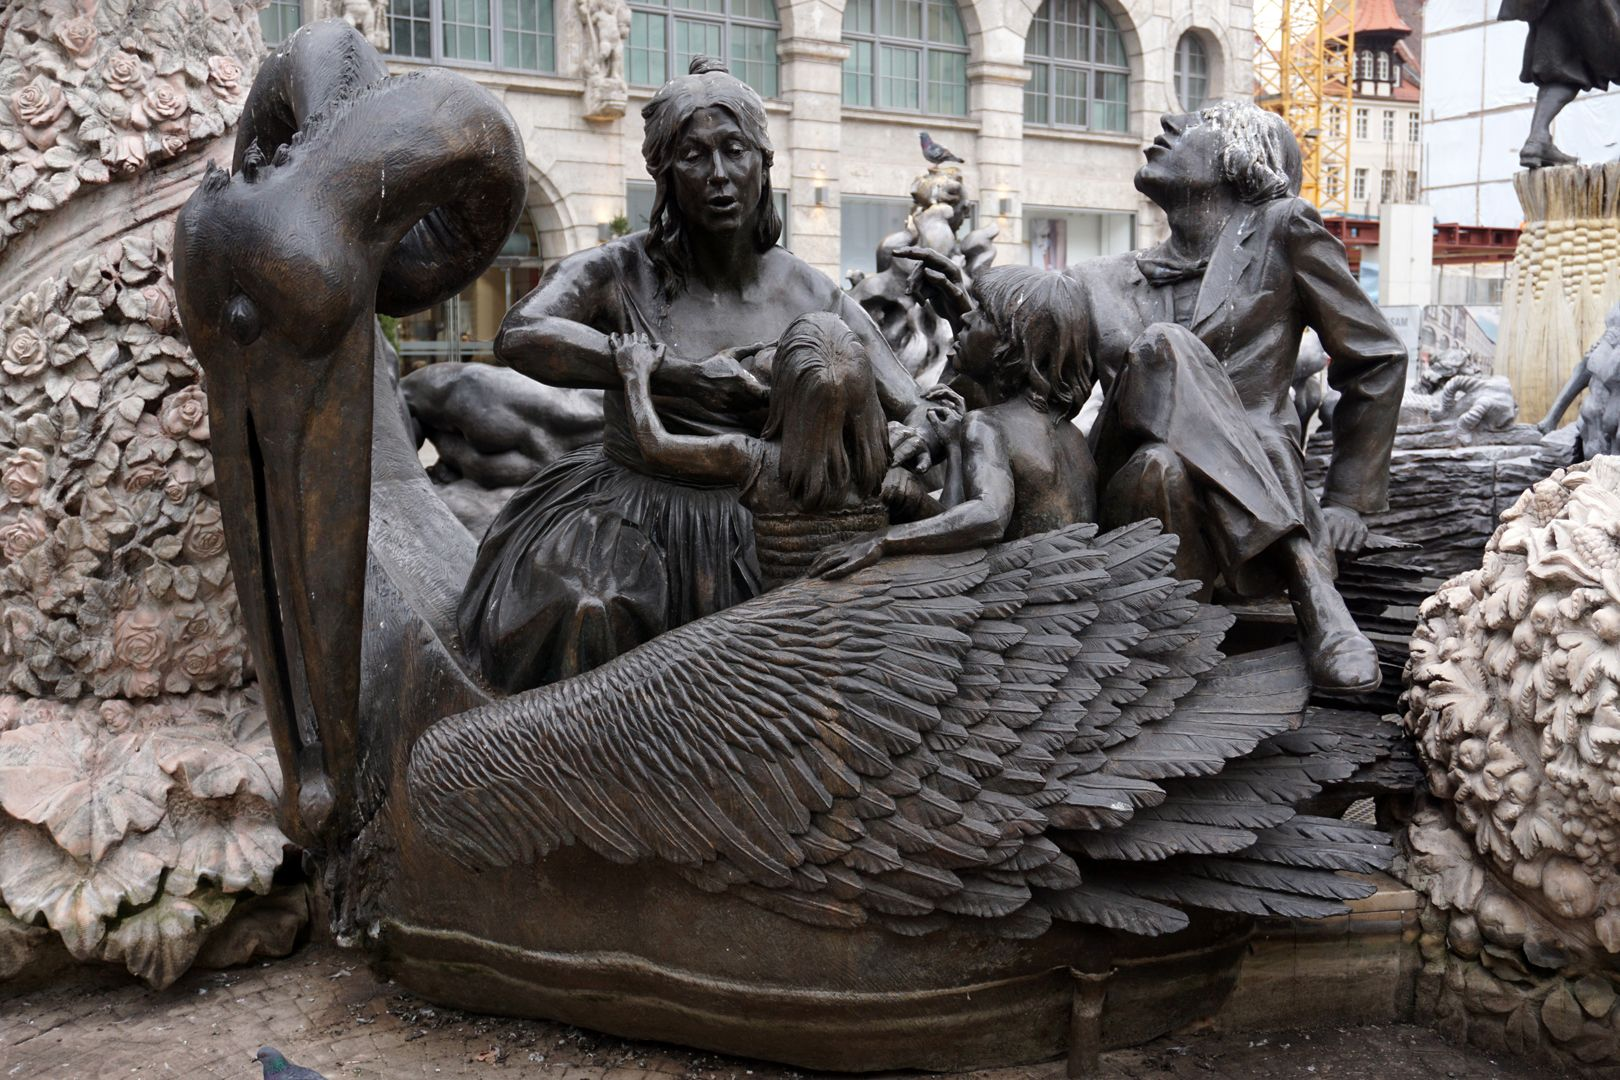 """Marriage carousel/ Hans Sachs Fountain """"Pelican Carriage"""", Pelican tearing its bleeding heart out of its body with its large beak. """"Among the early Christians, the pelican was considered the symbol of a mother's love""""."""